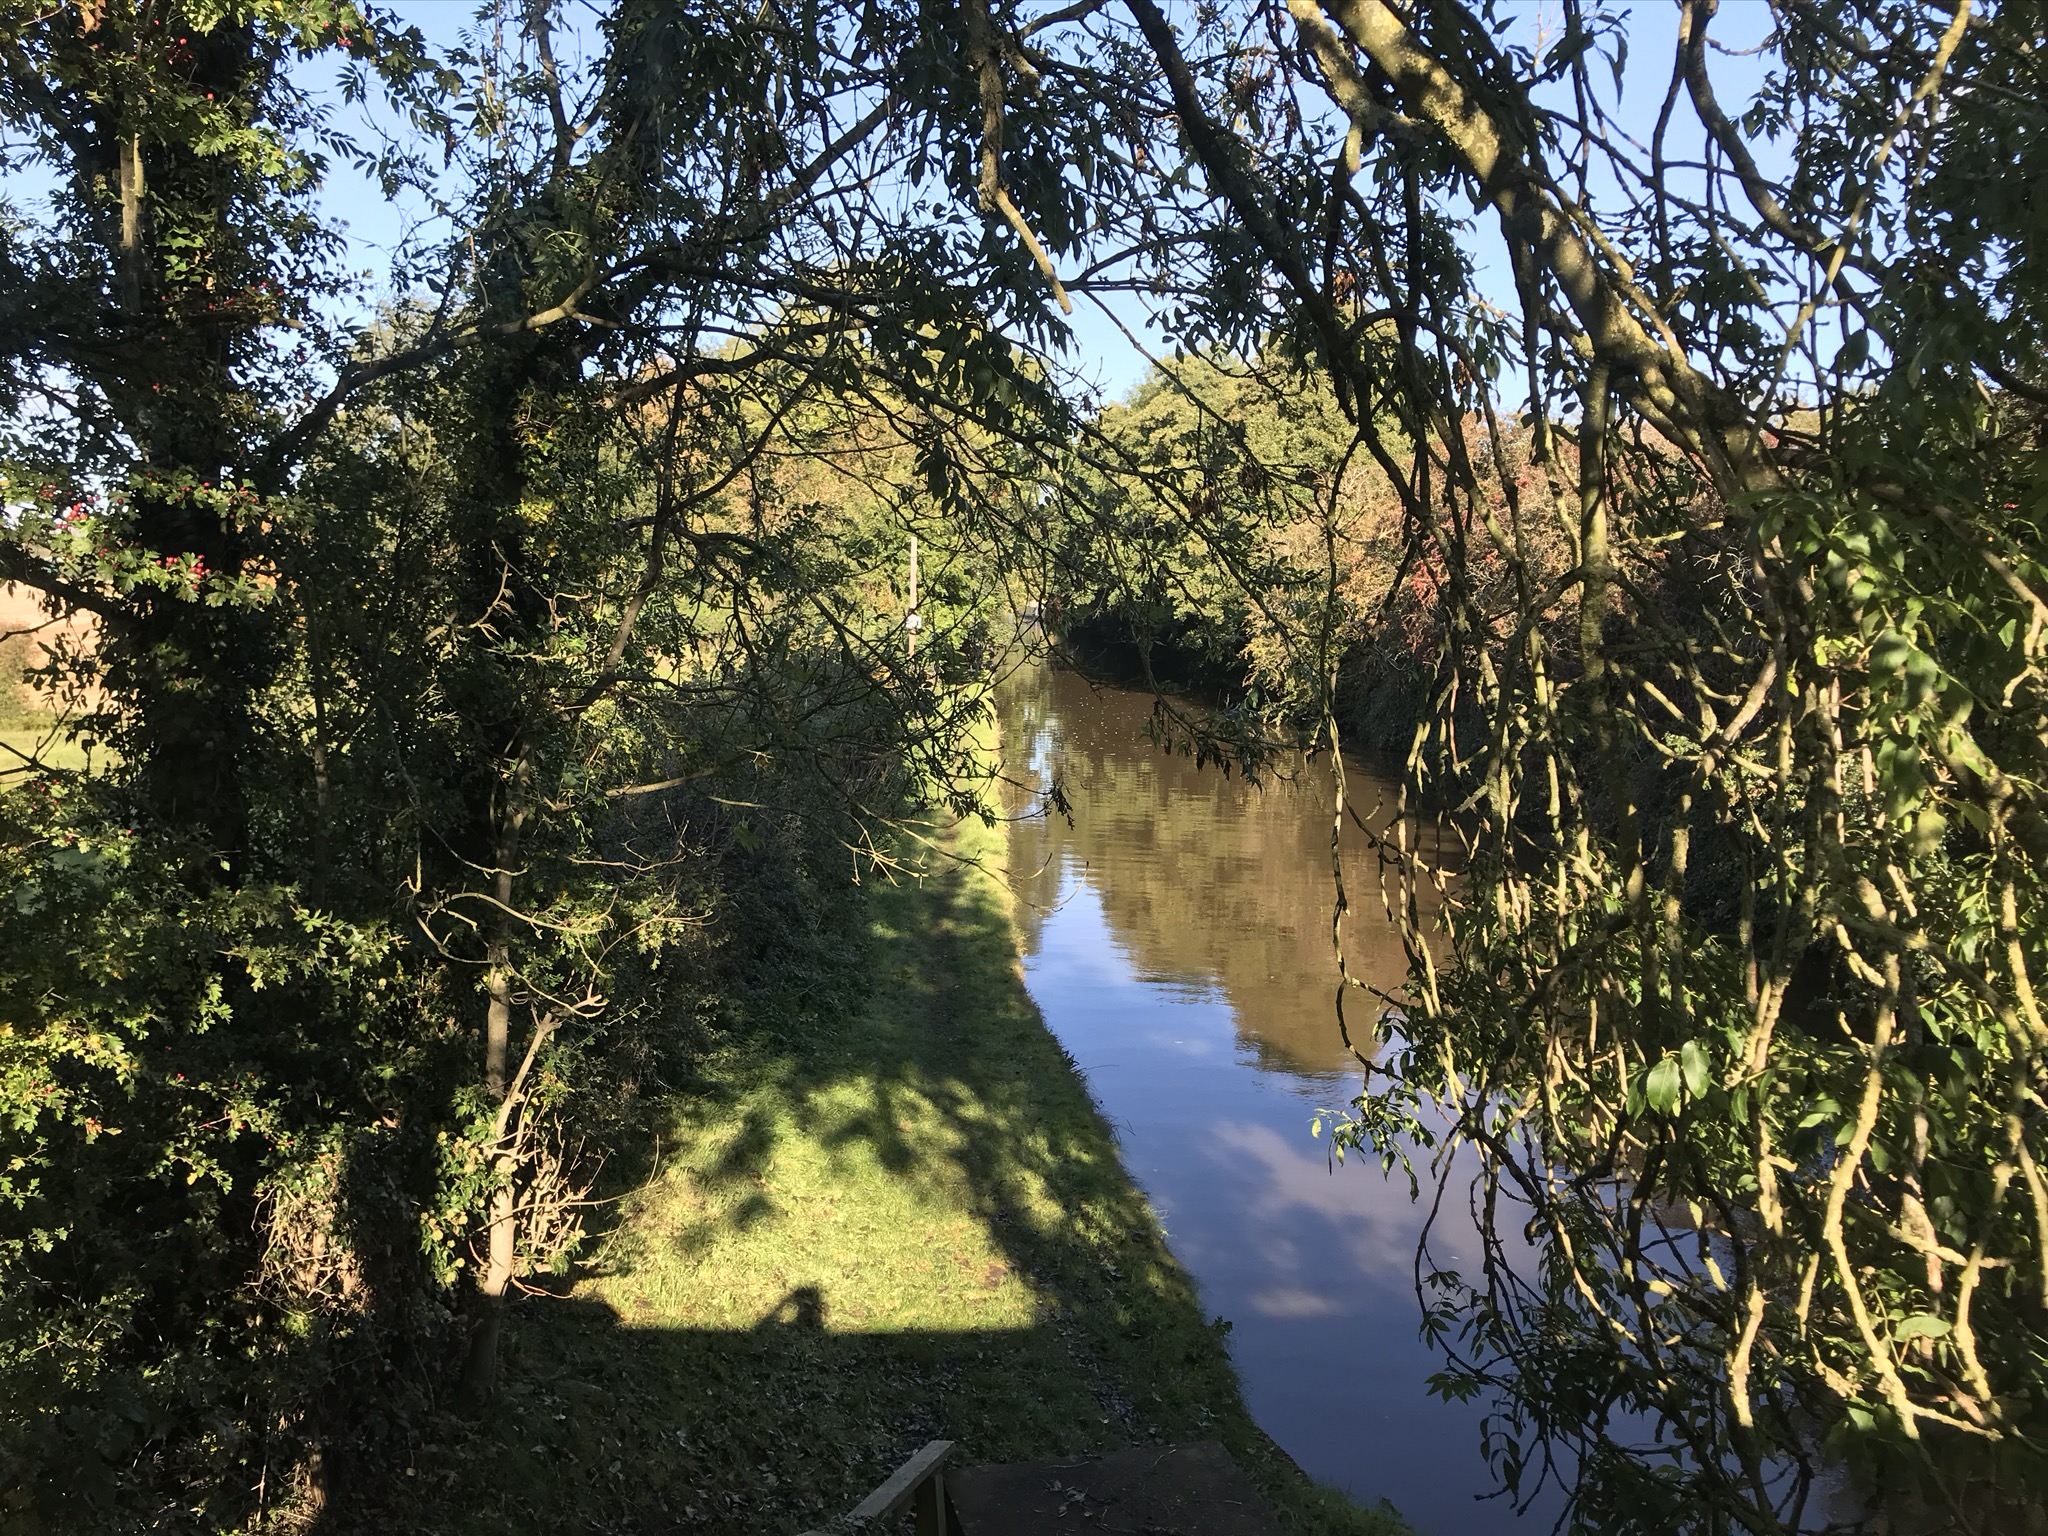 A view of the canal from the top of steps leading down to a grassy towpath. The blue sky can be seen through overhanging trees.